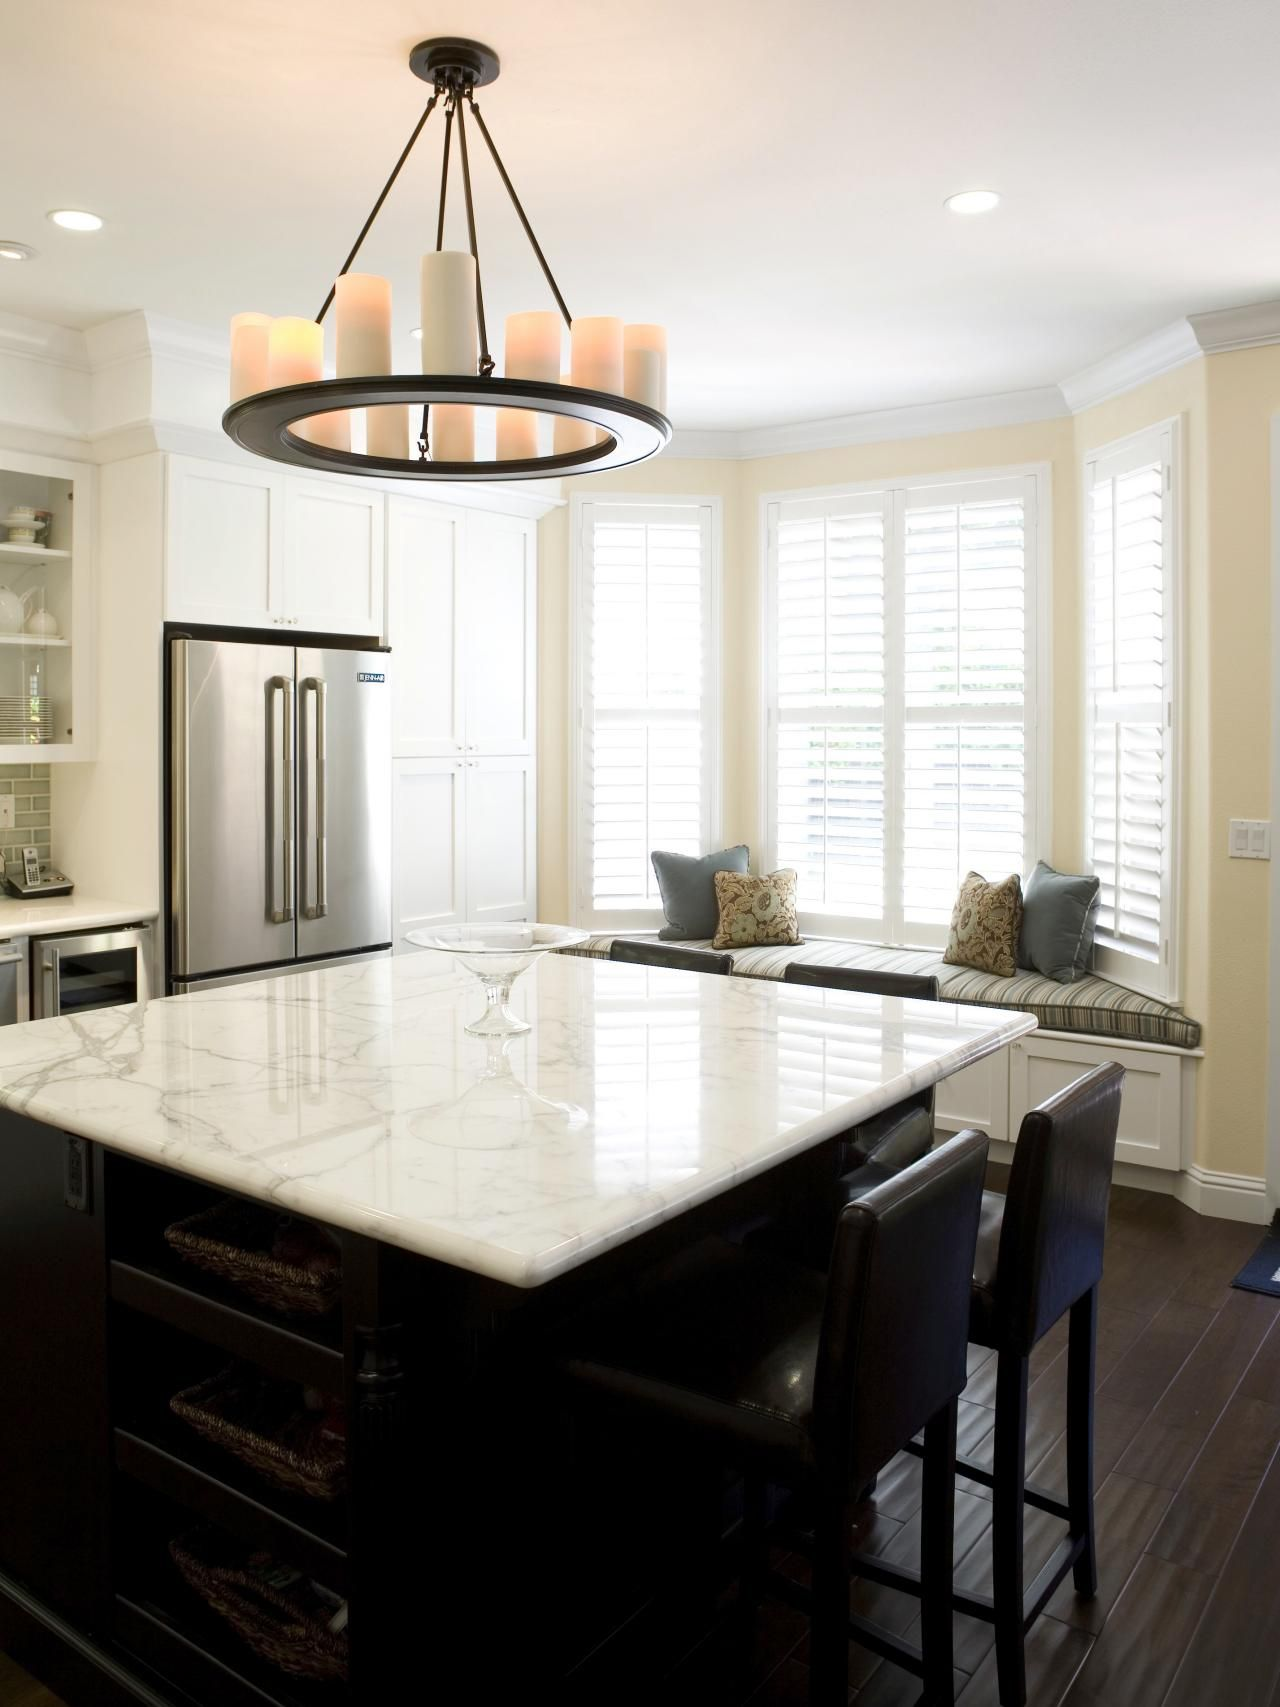 This Neutral Transitional Kitchen Features A Dark Wood